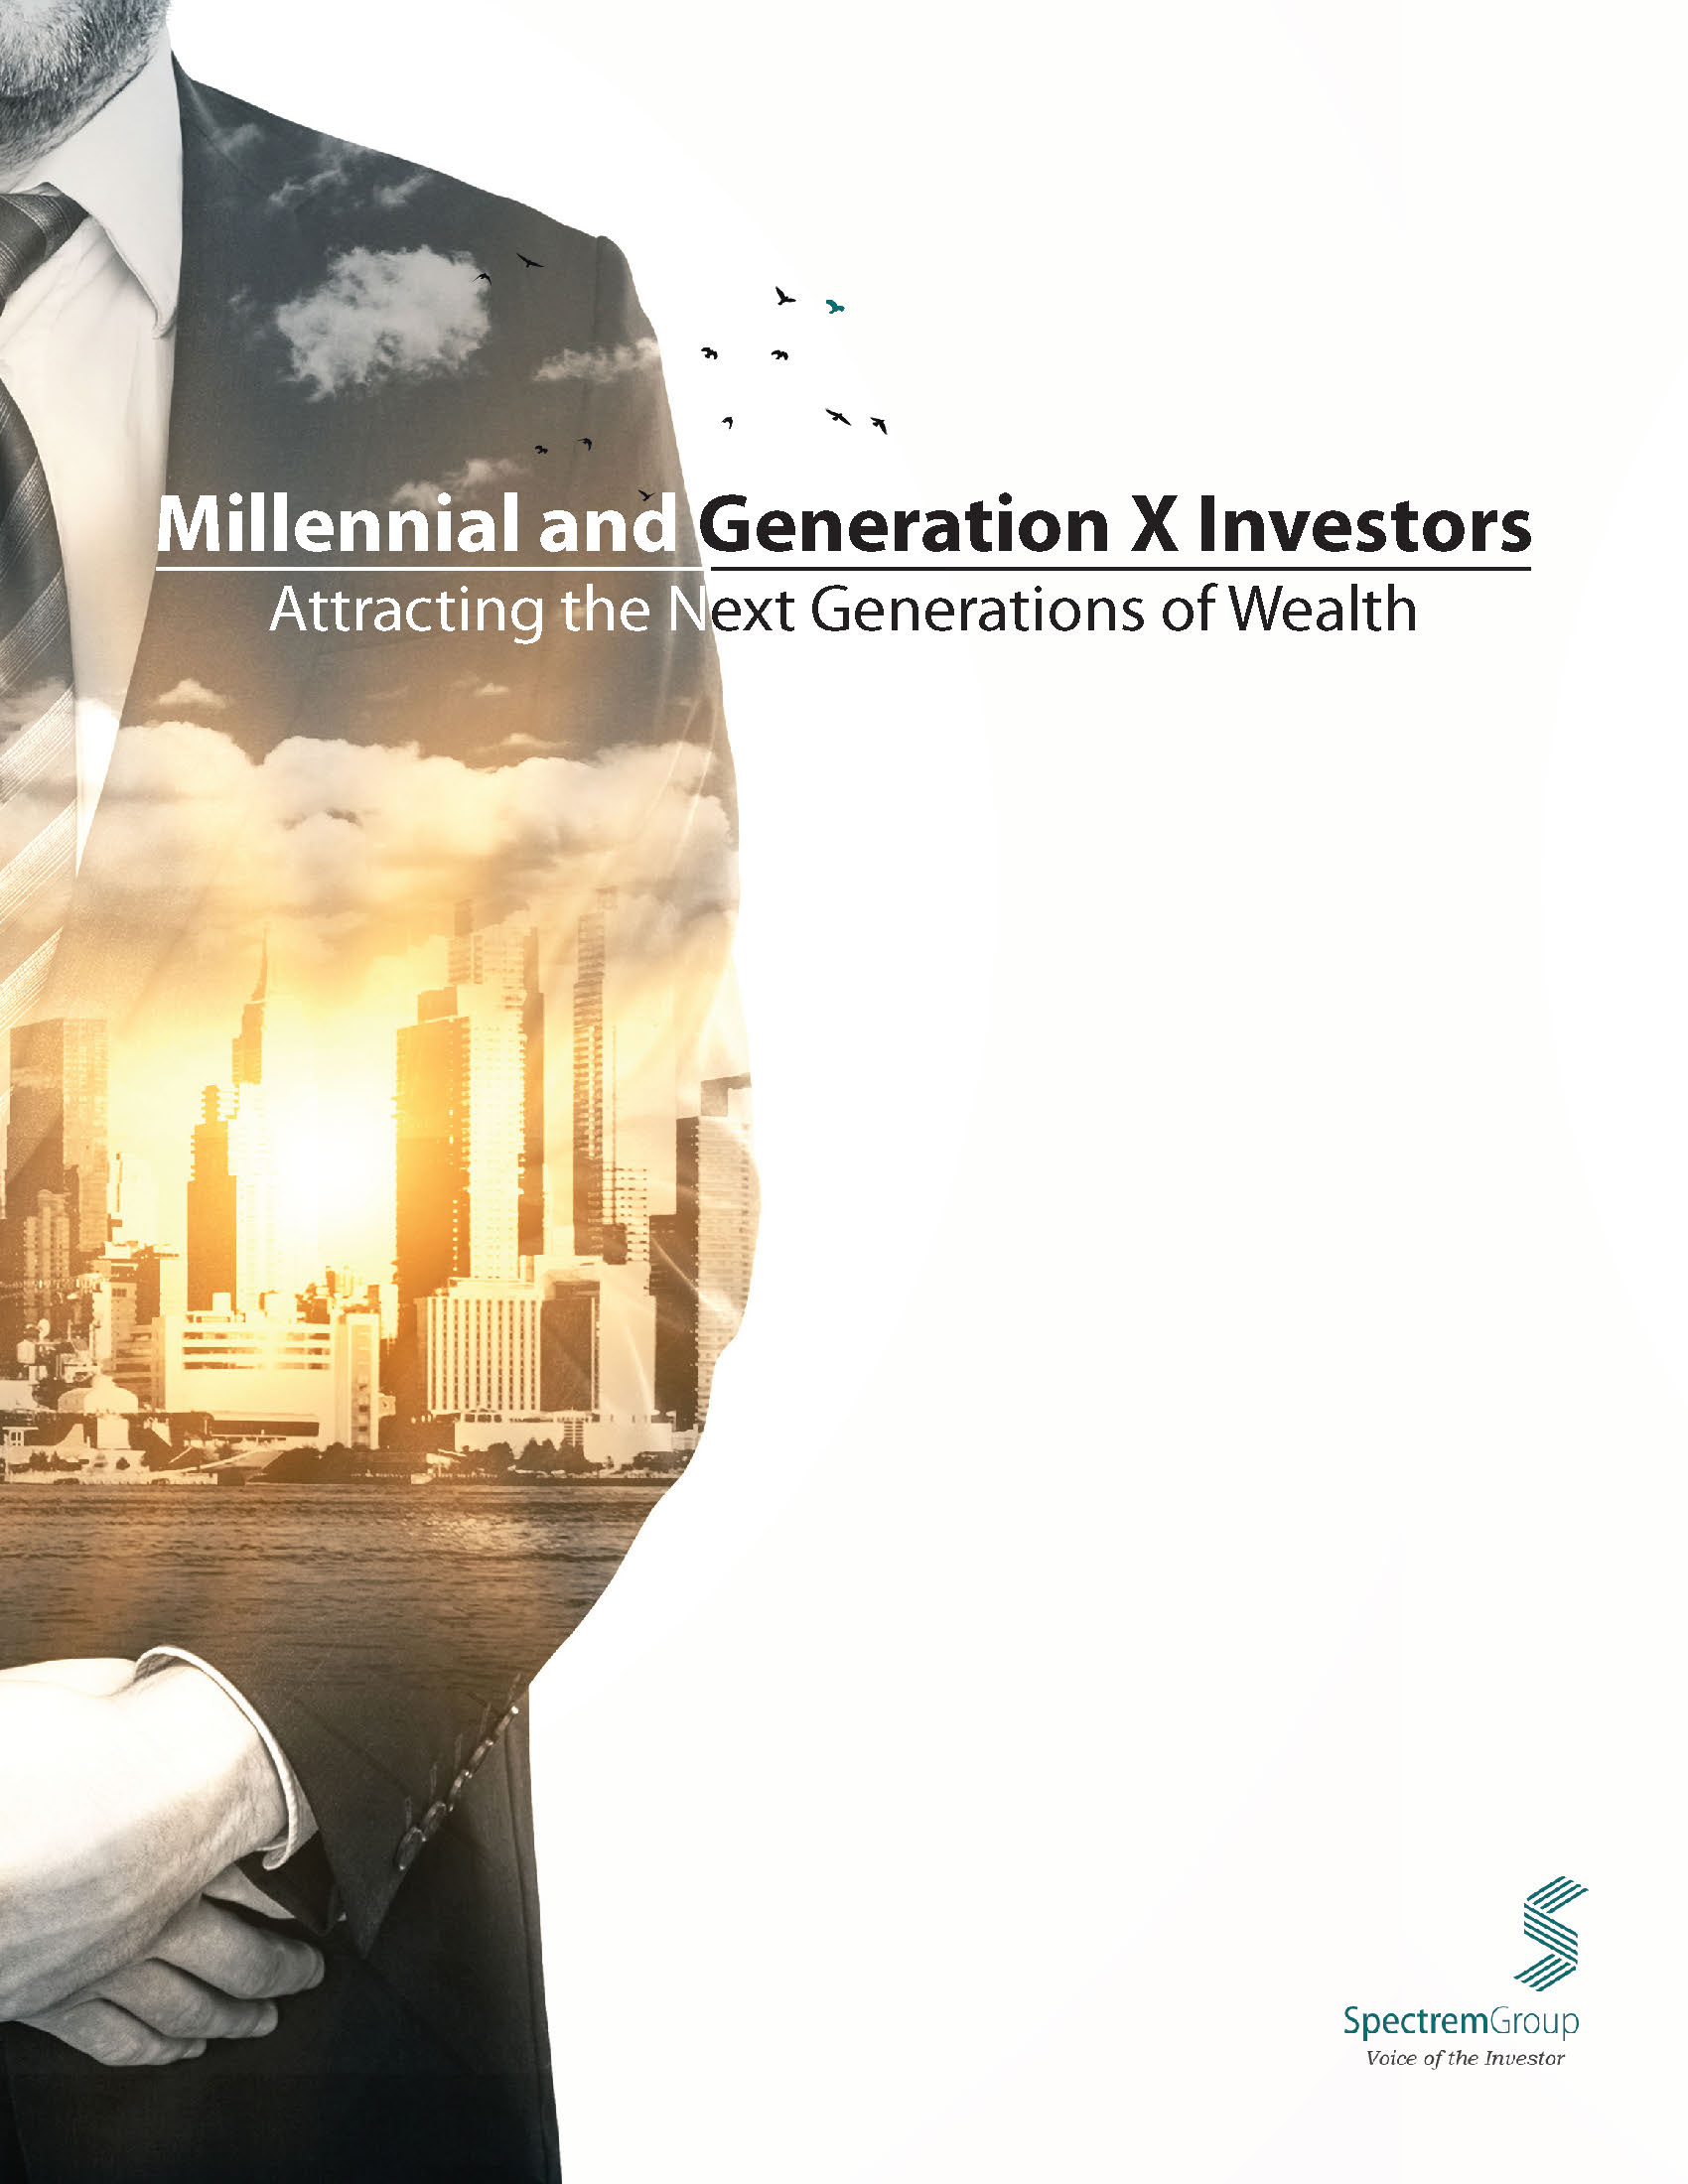 Millennial and Generation X Investors: Attracting the Next Generations of Wealth